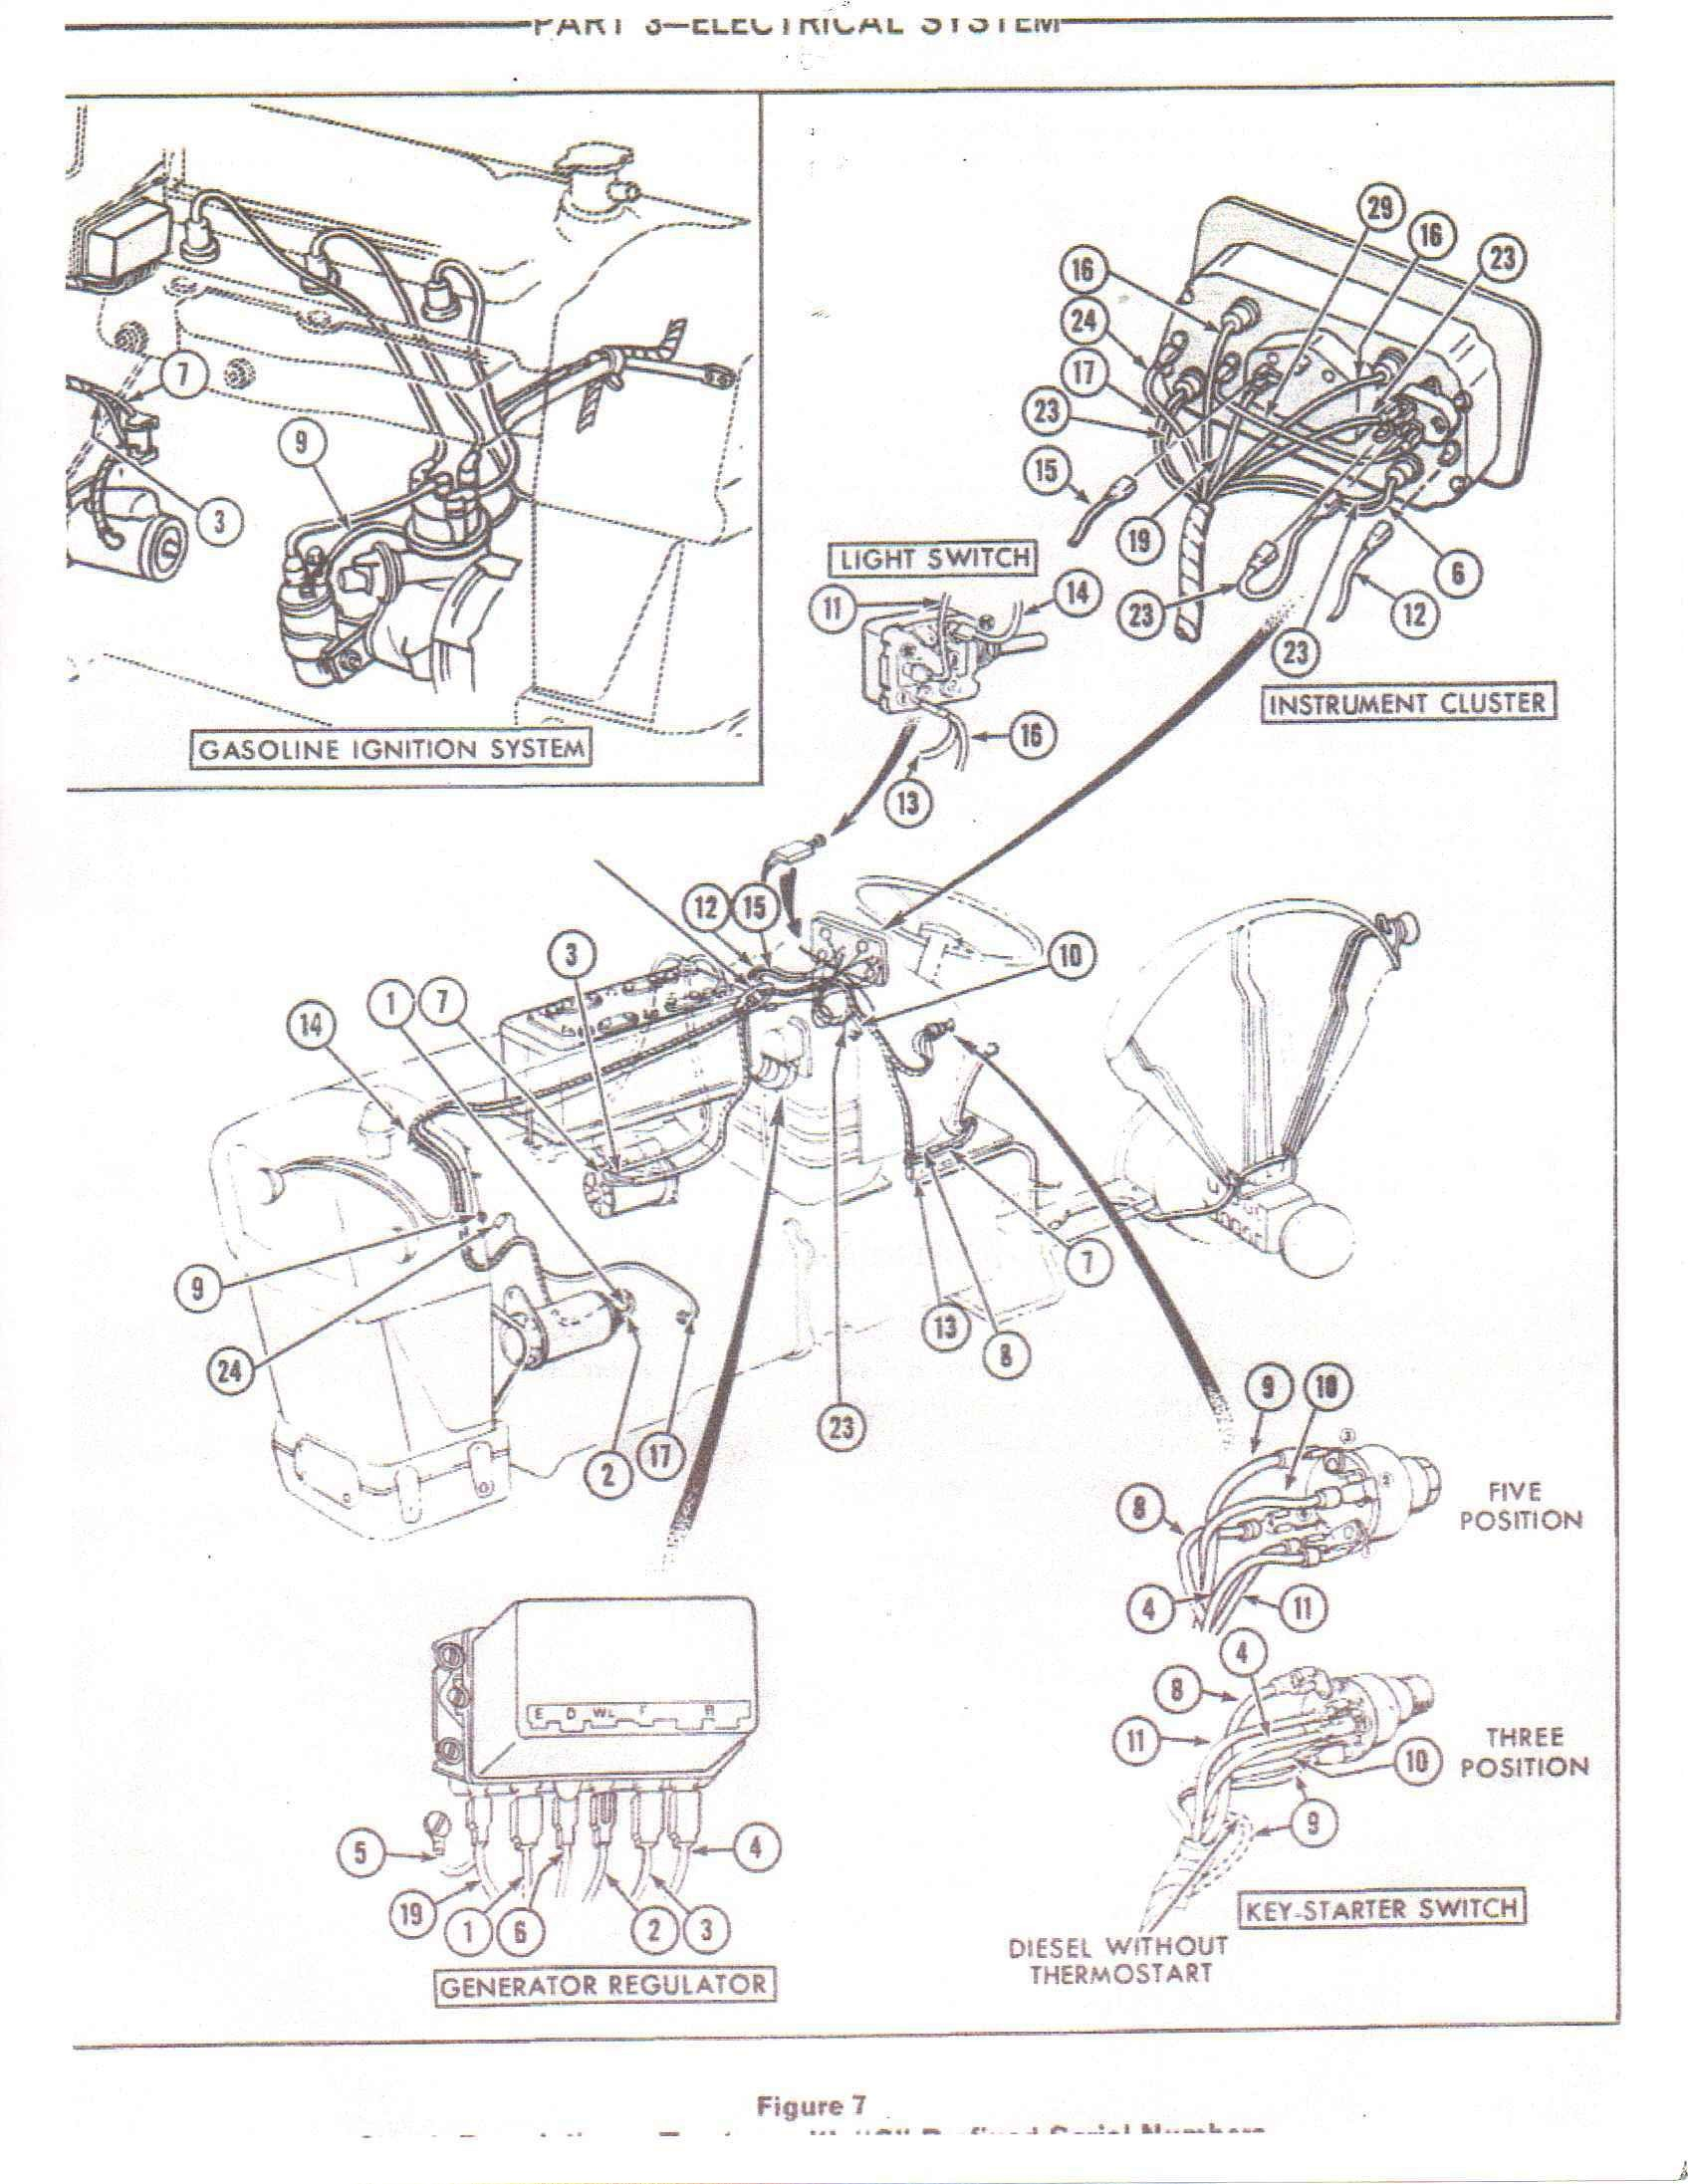 4000 ford tractor alternator wiring u2022 free wiring diagrams rh pcpersia org 6610 Ford Tractor Wiring Diagram Ford 4630 Tractor Wiring Diagram